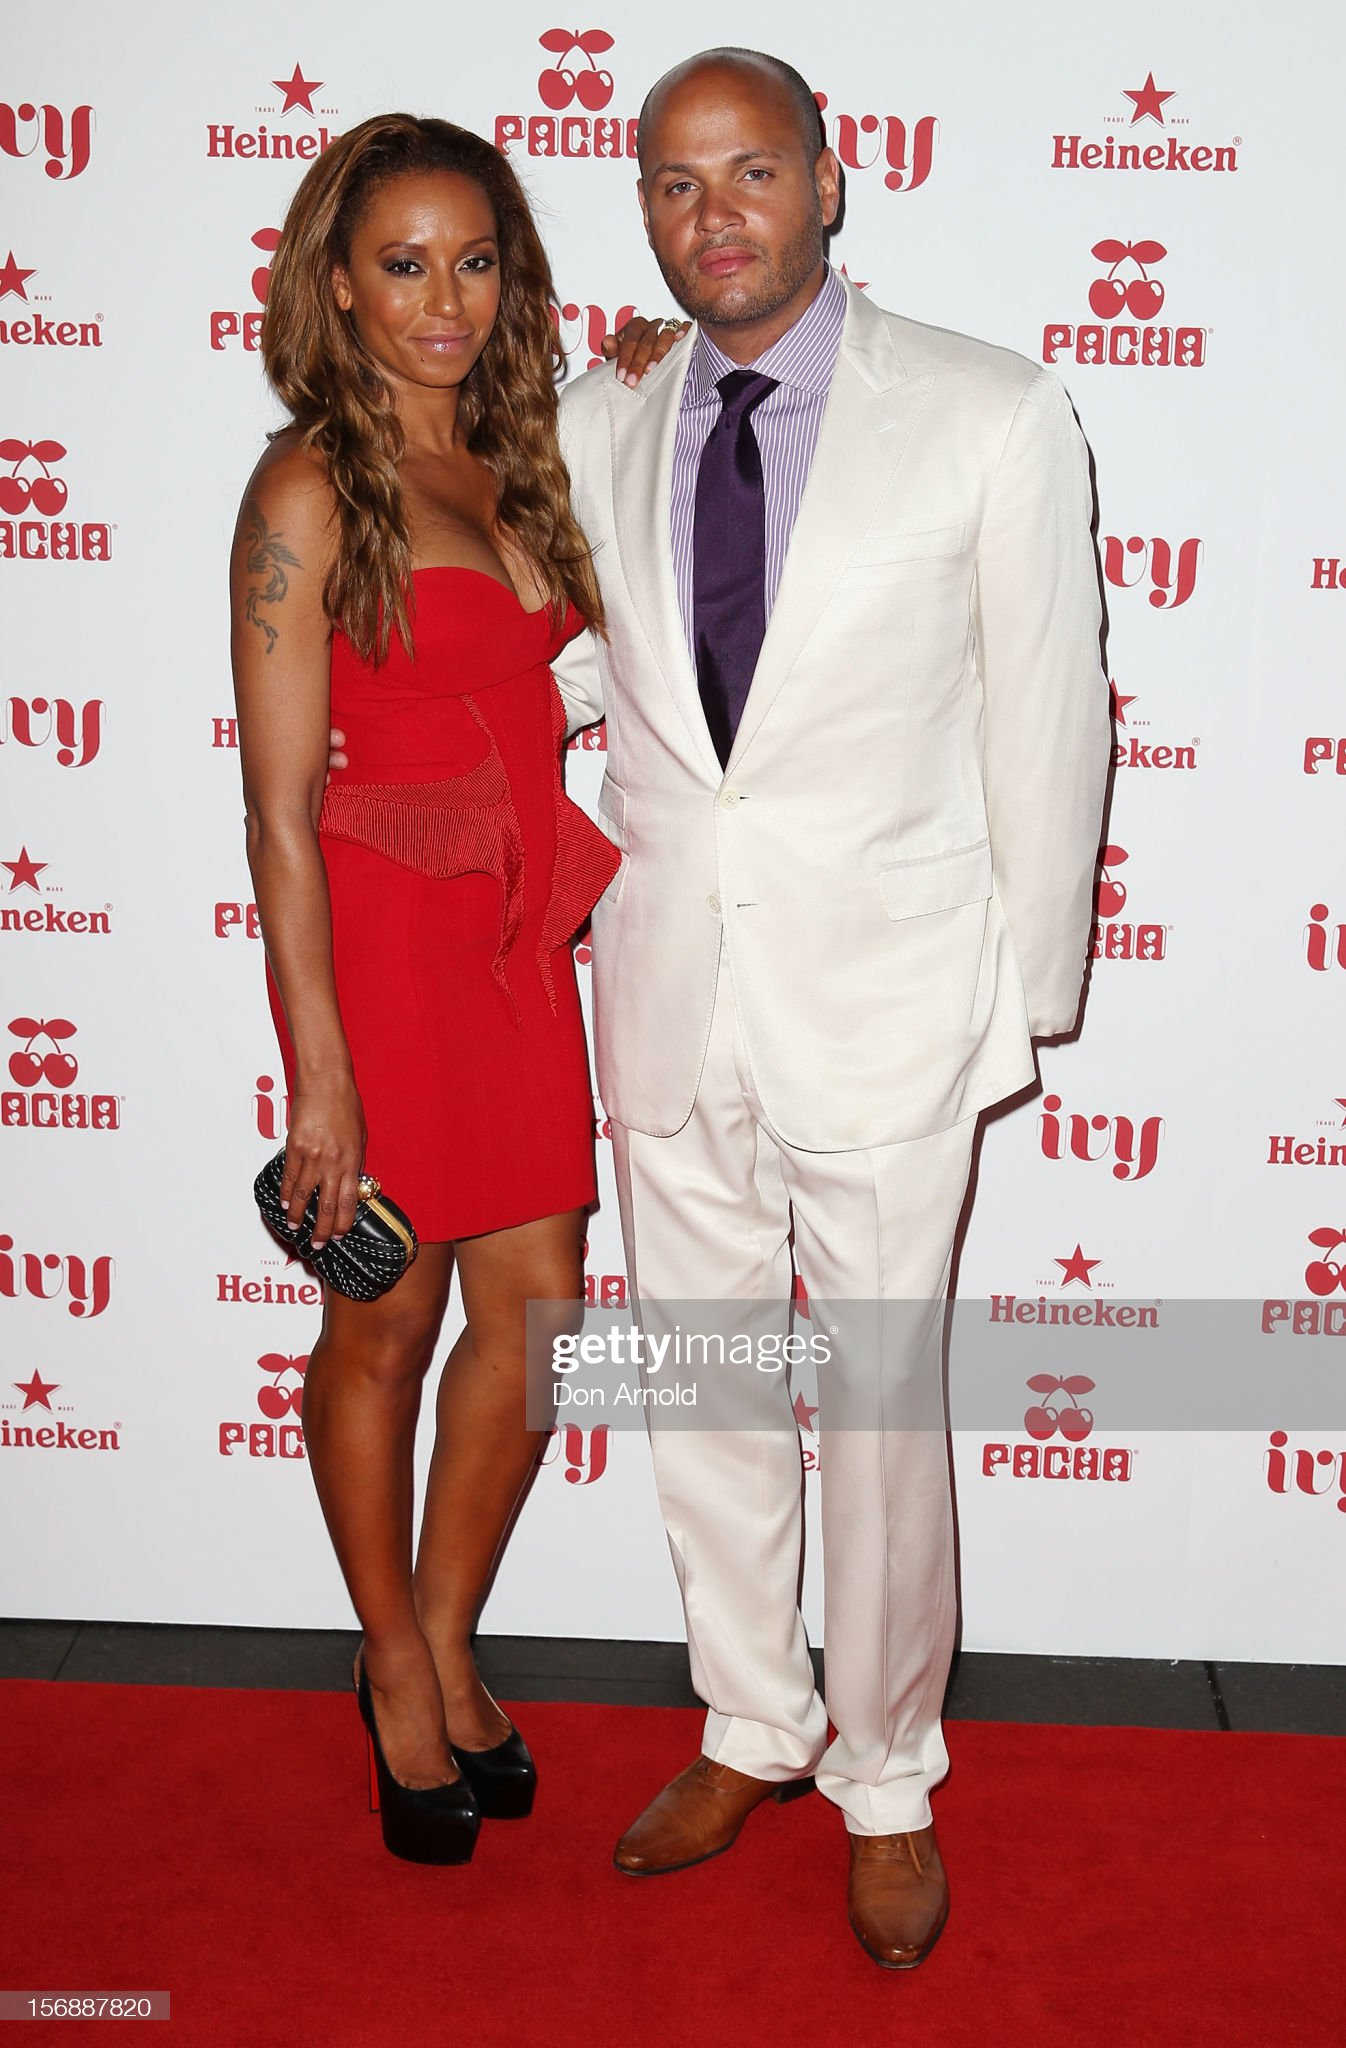 ¿Cuánto mide Melanie Brown (Mel B)? - Altura - Real height Mel-b-and-stephen-belafonte-pose-at-the-pacha-launch-at-the-ivy-on-picture-id156887820?s=2048x2048